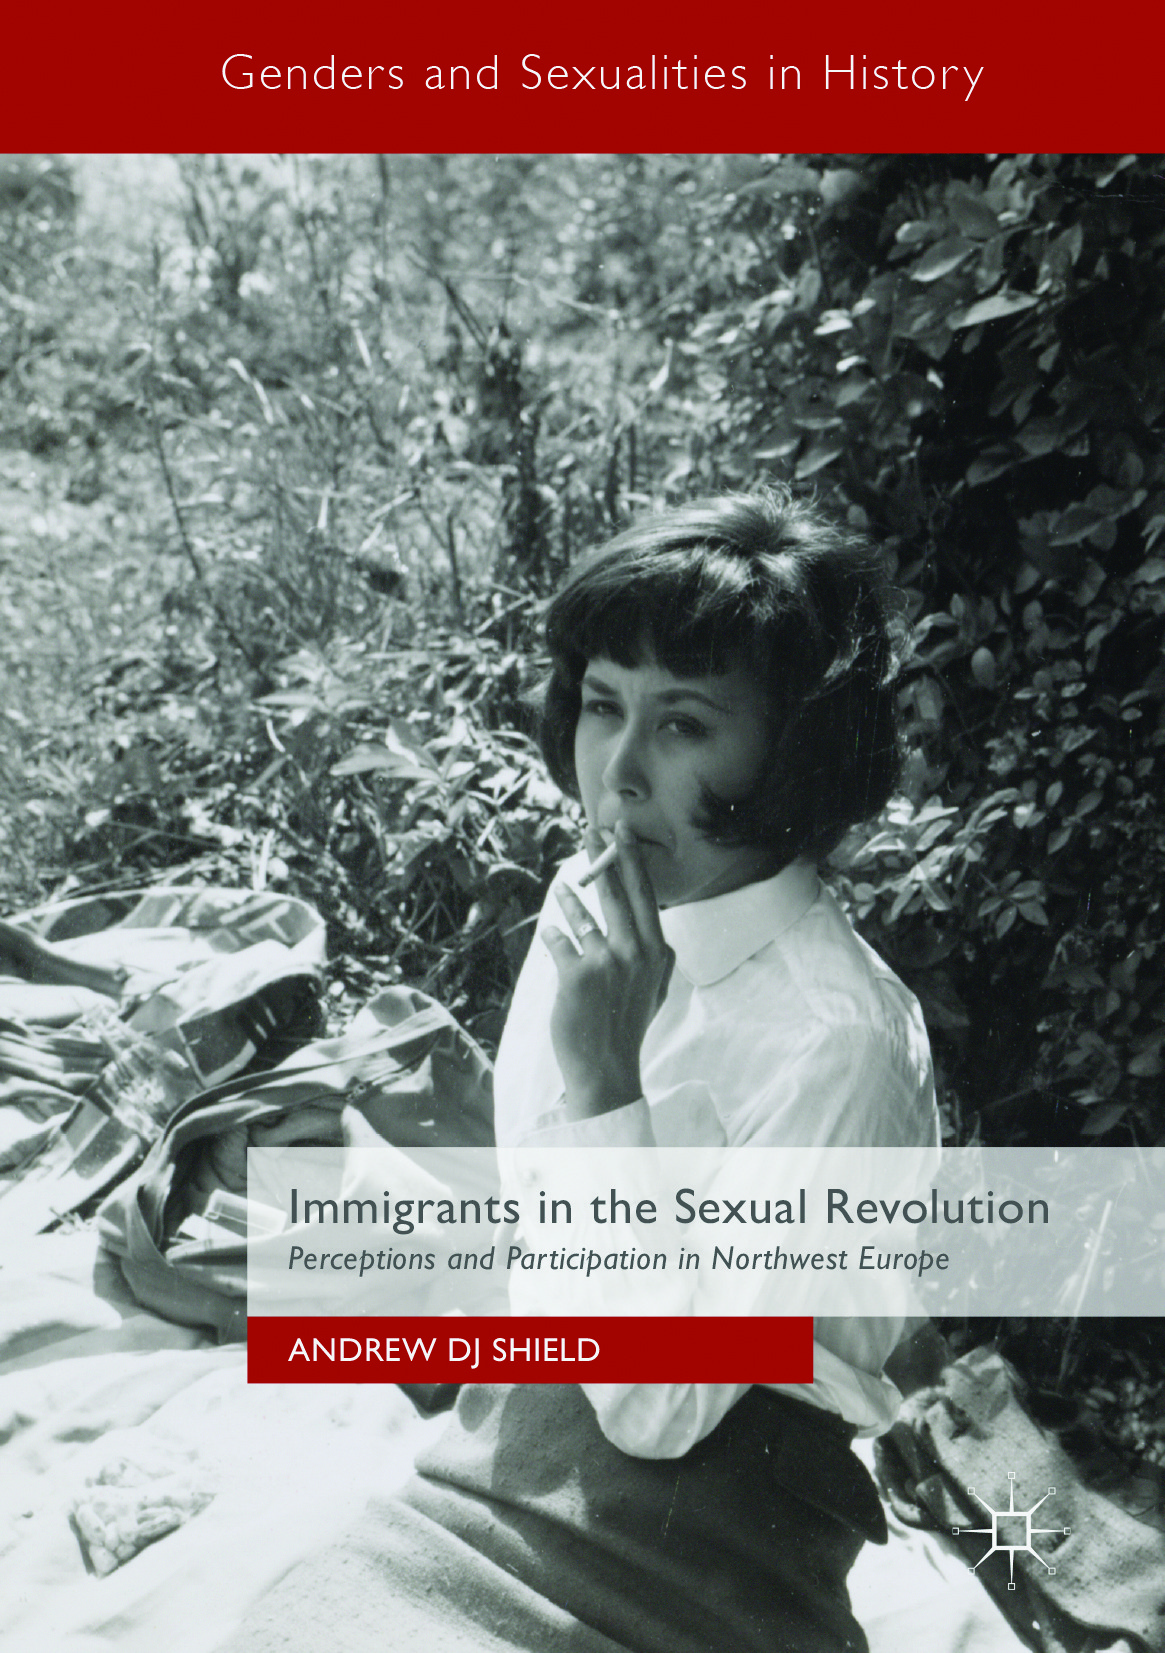 Shield, Andrew DJ - Immigrants in the Sexual Revolution, ebook